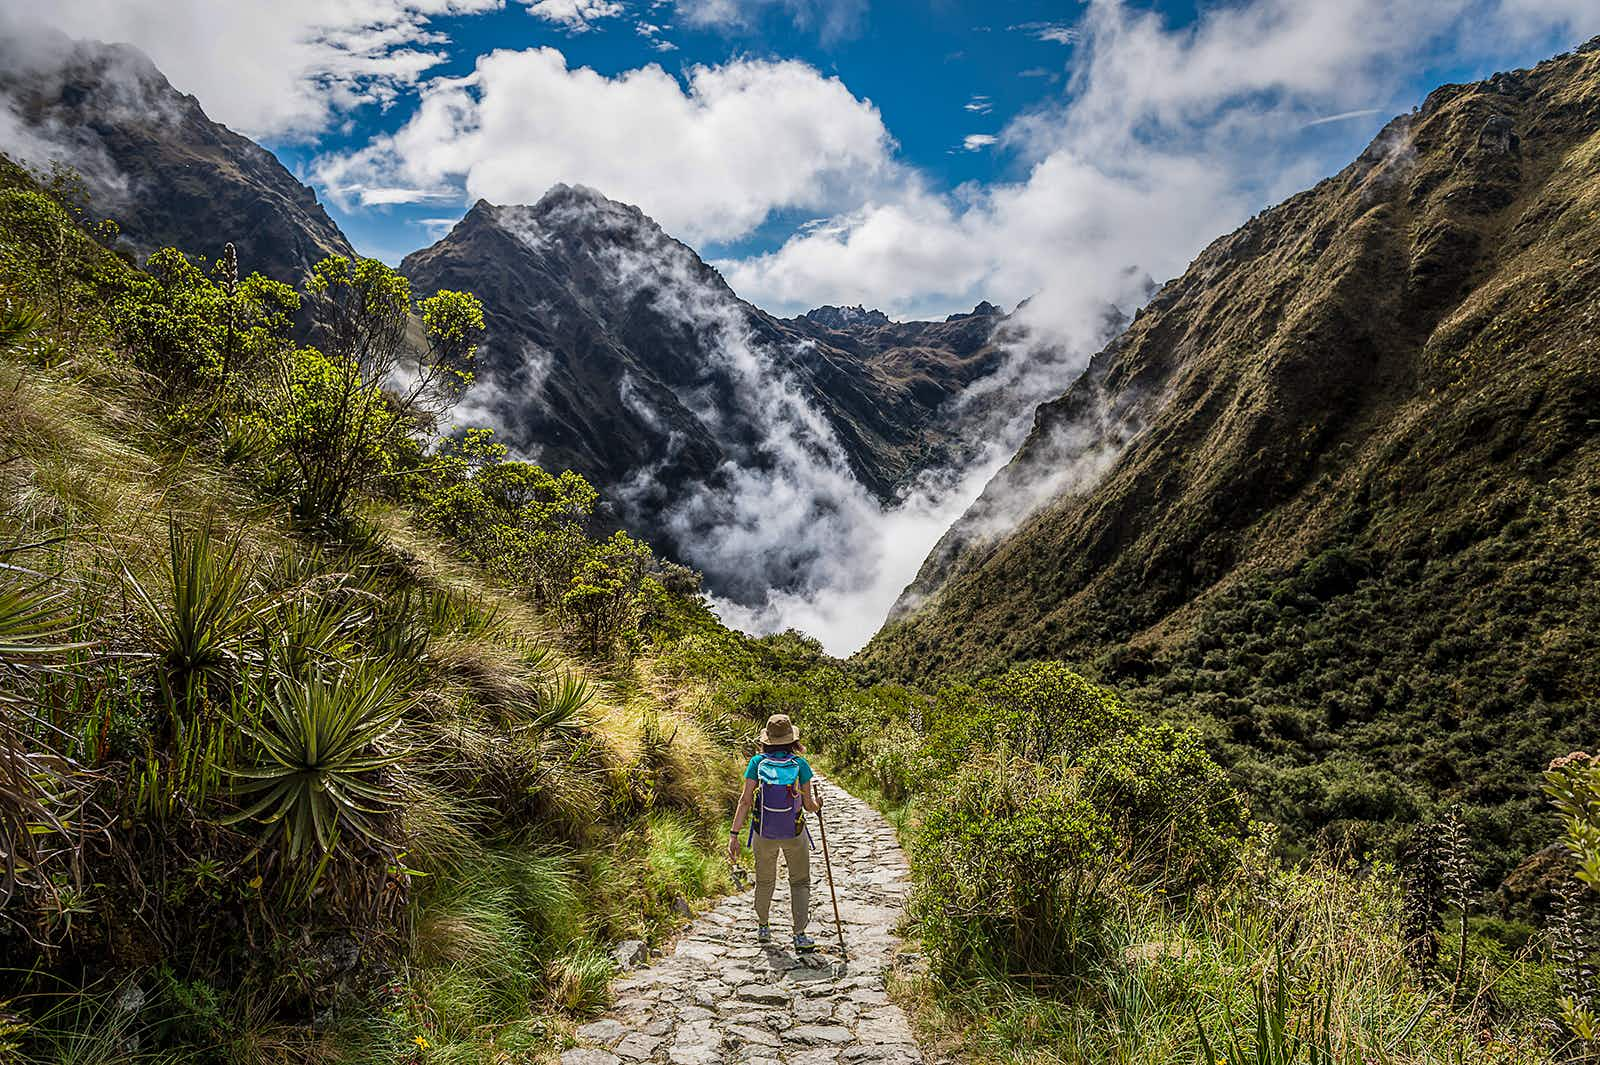 Make sure you do some planning before you head down to the Inca Trail © sharptoyou / shutterstock